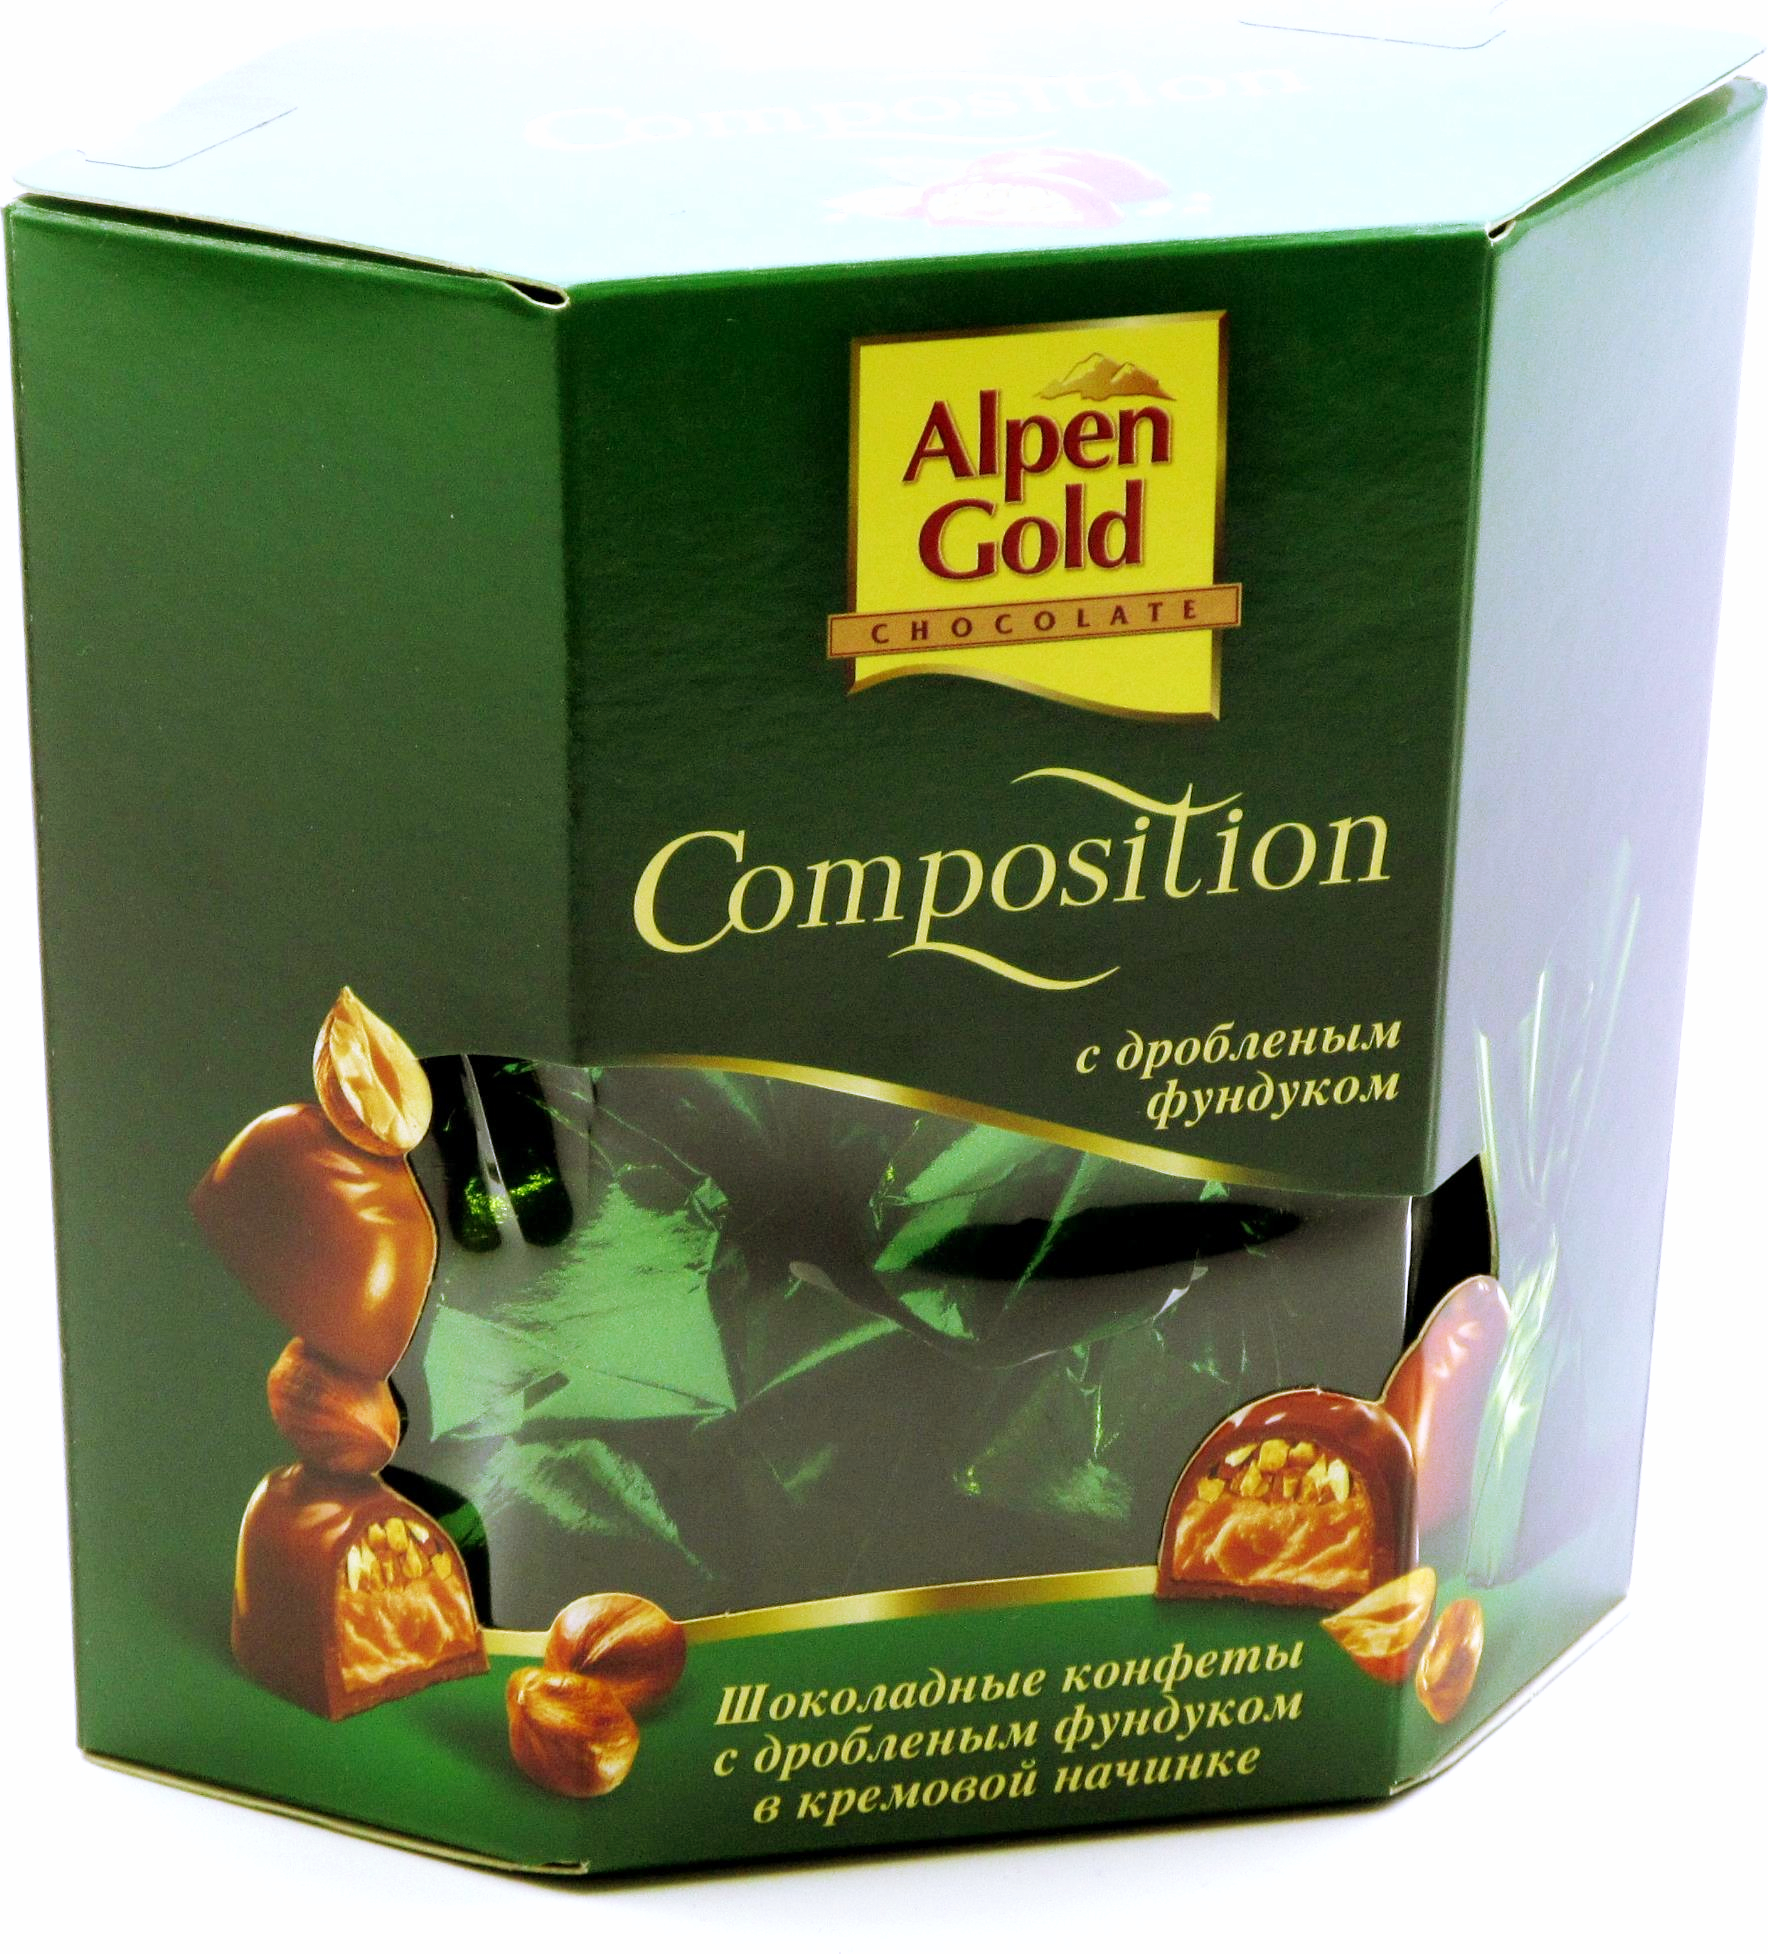 Шоколадные конфеты Alpen Gold Composition с дроблёным фундуком